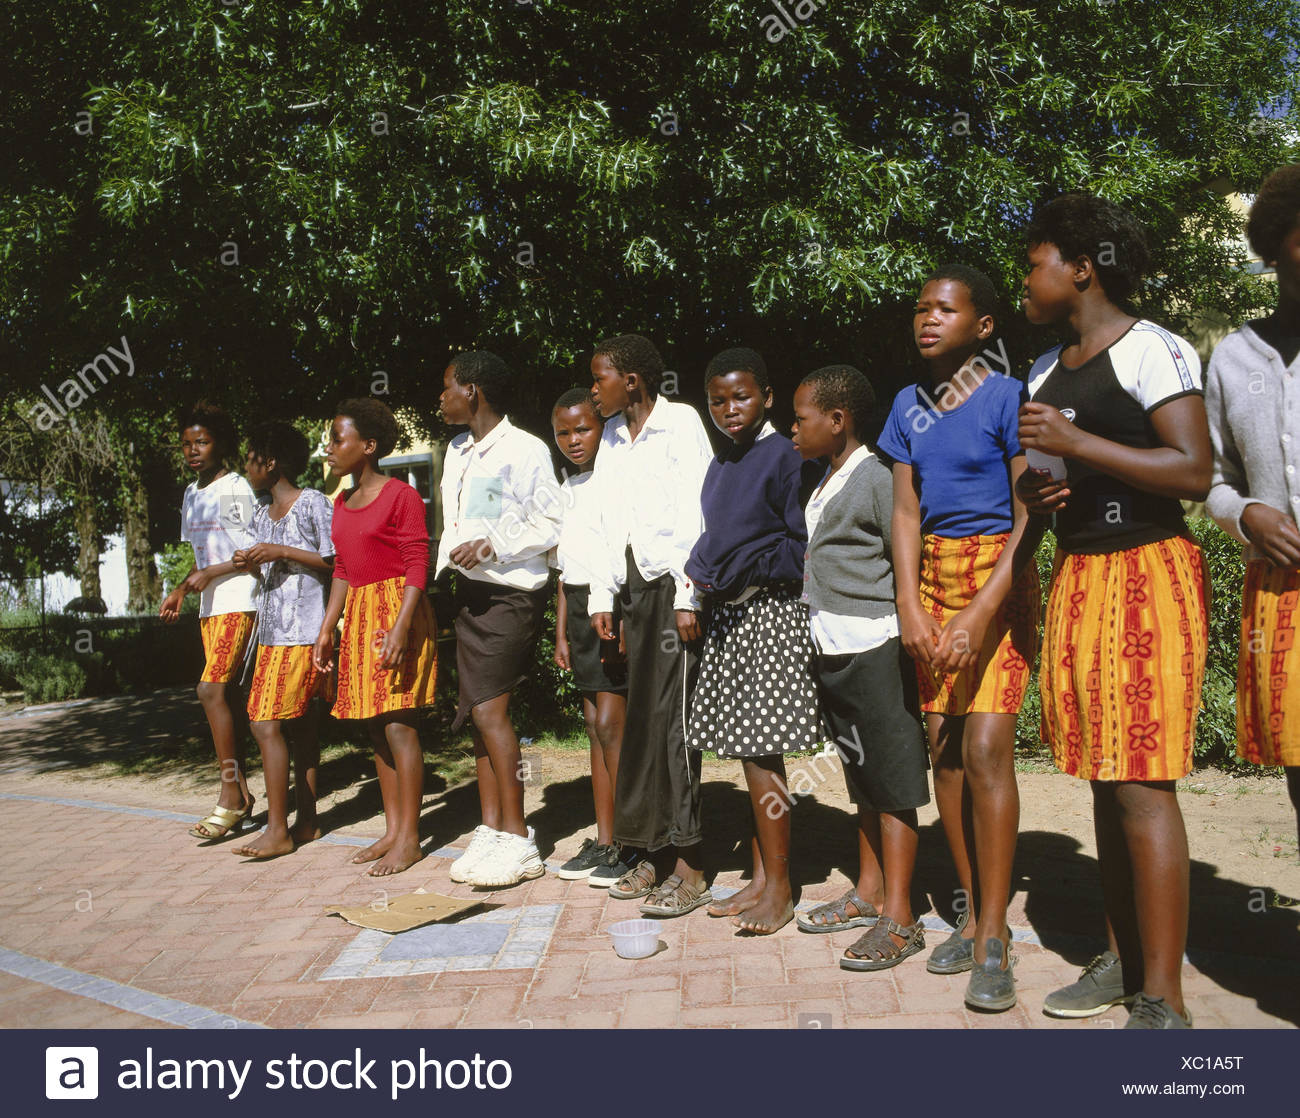 Gospel Choir Stock Photos & Gospel Choir Stock Images - Alamy